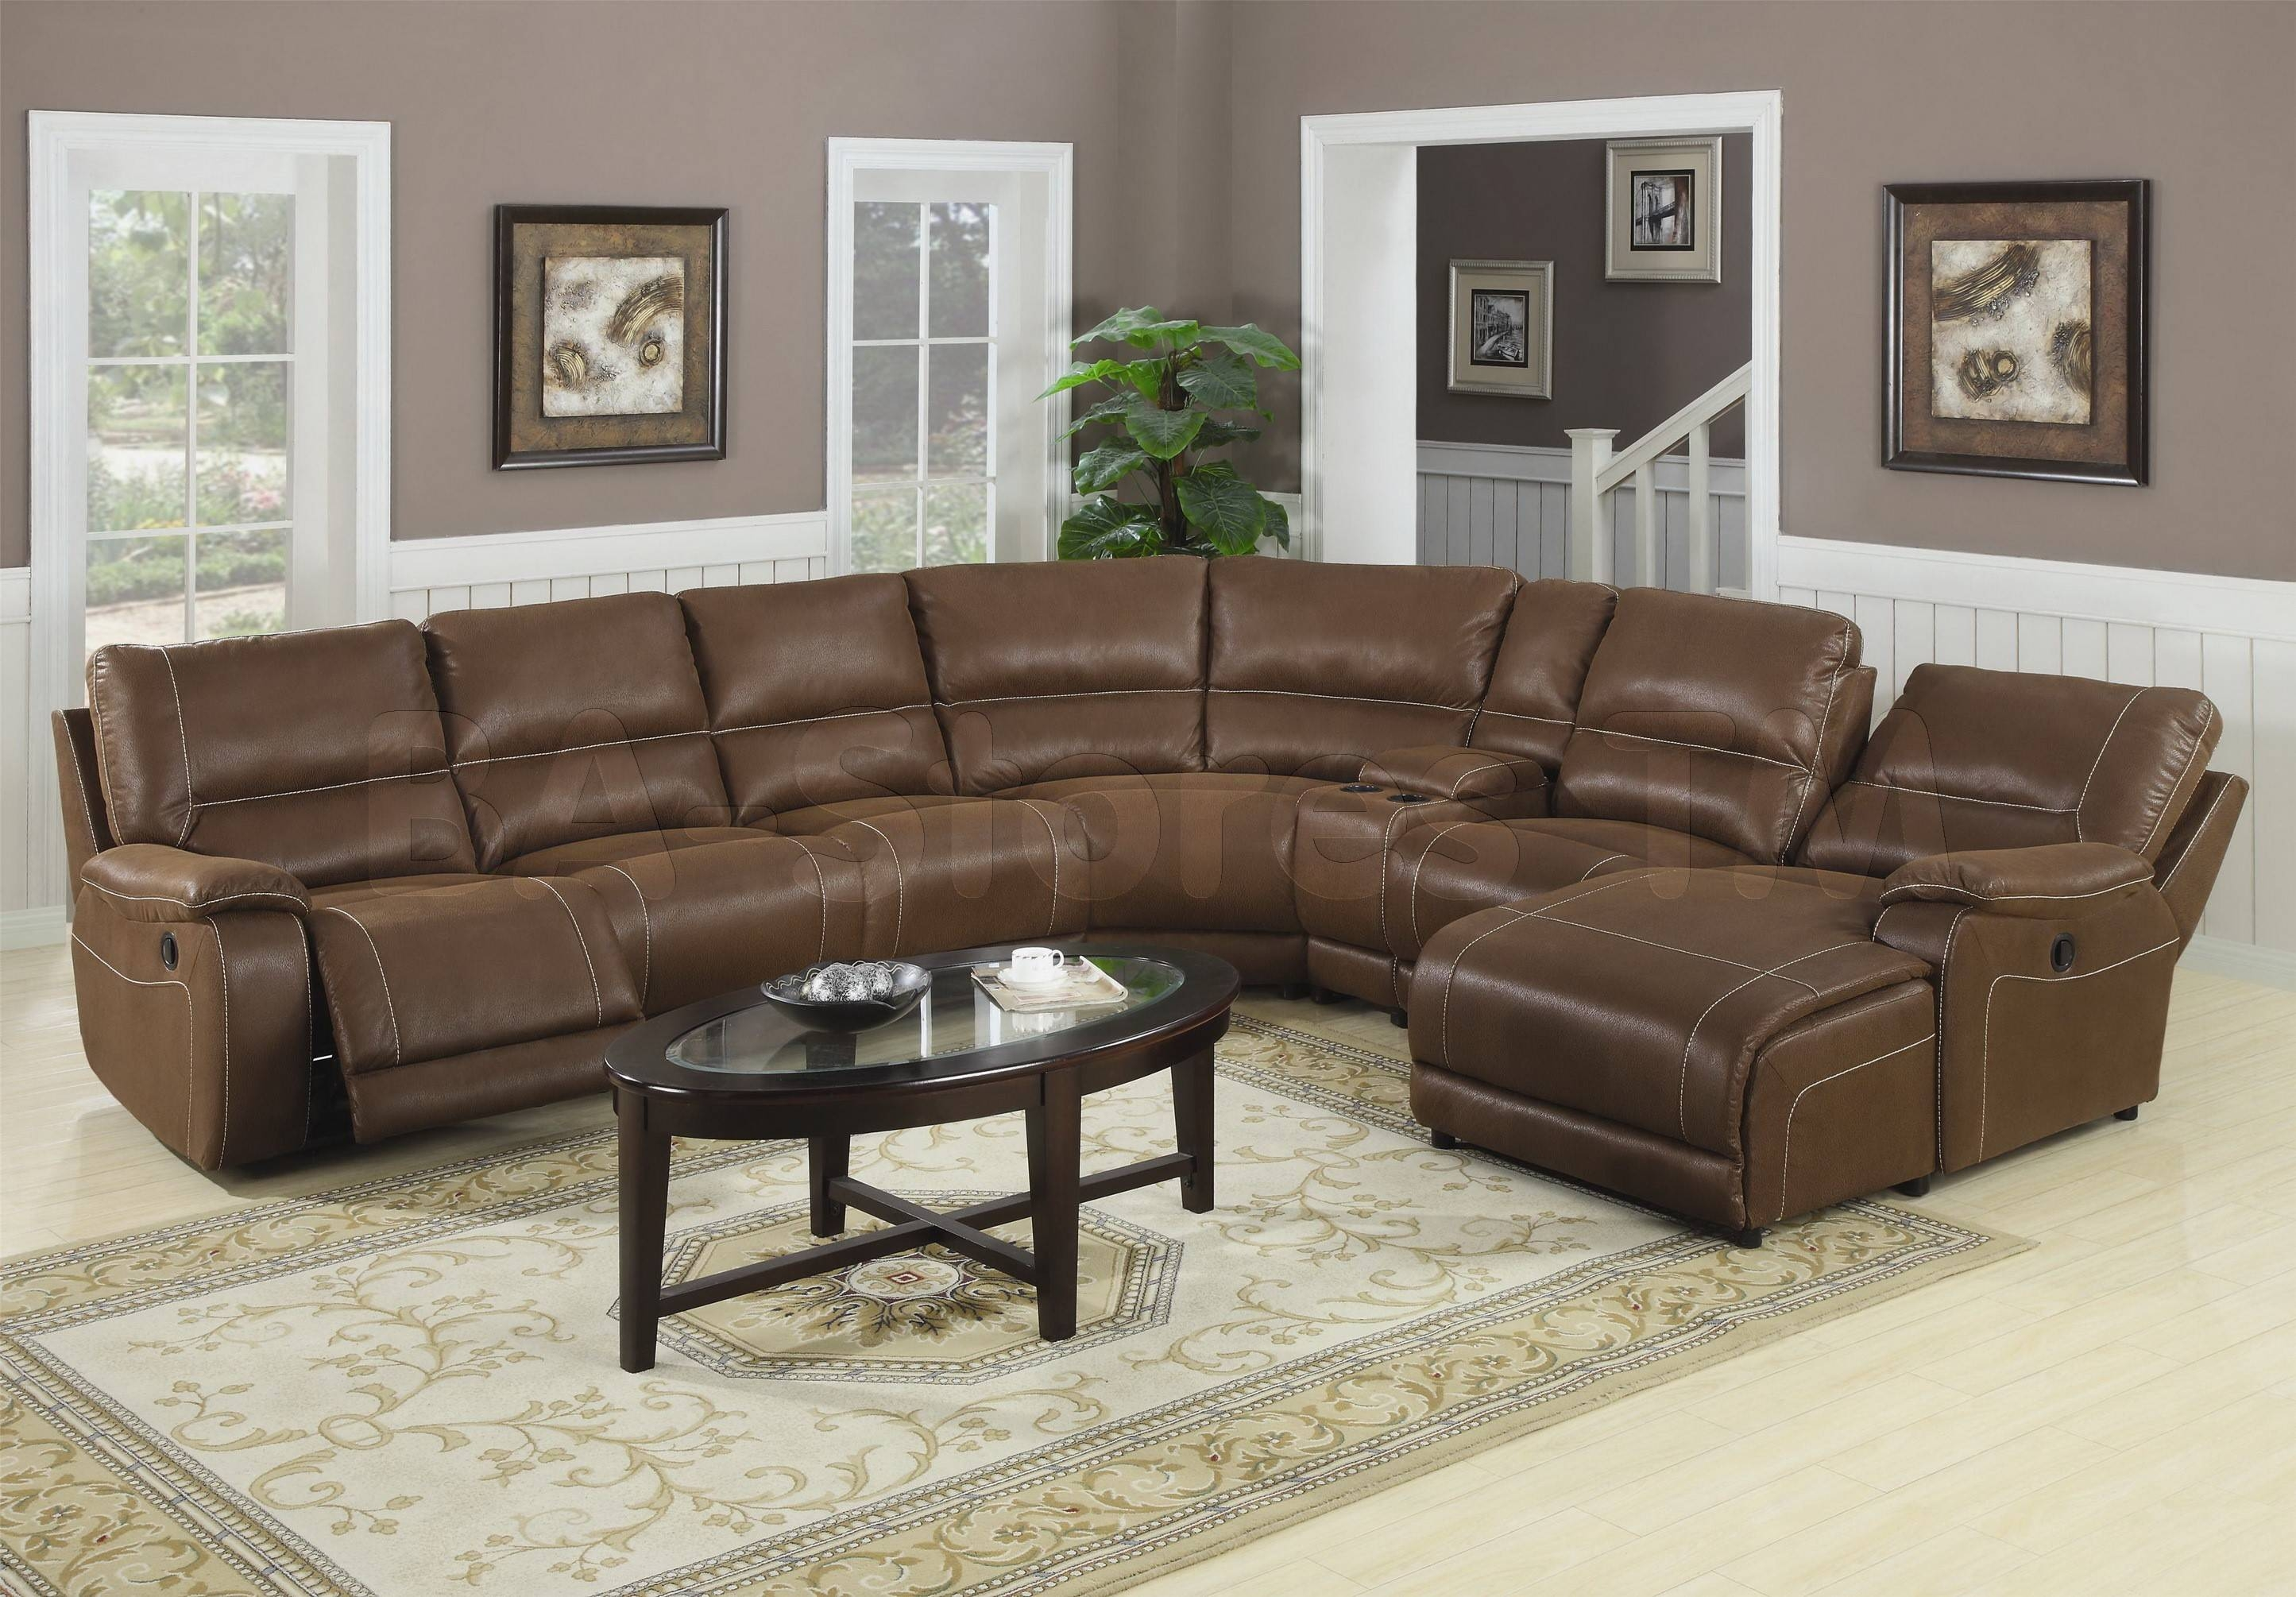 Astonishing Sectional Sofa With Recliner And Chaise Lounge 93 With within Jennifer Sofas And Sectionals (Image 4 of 15)